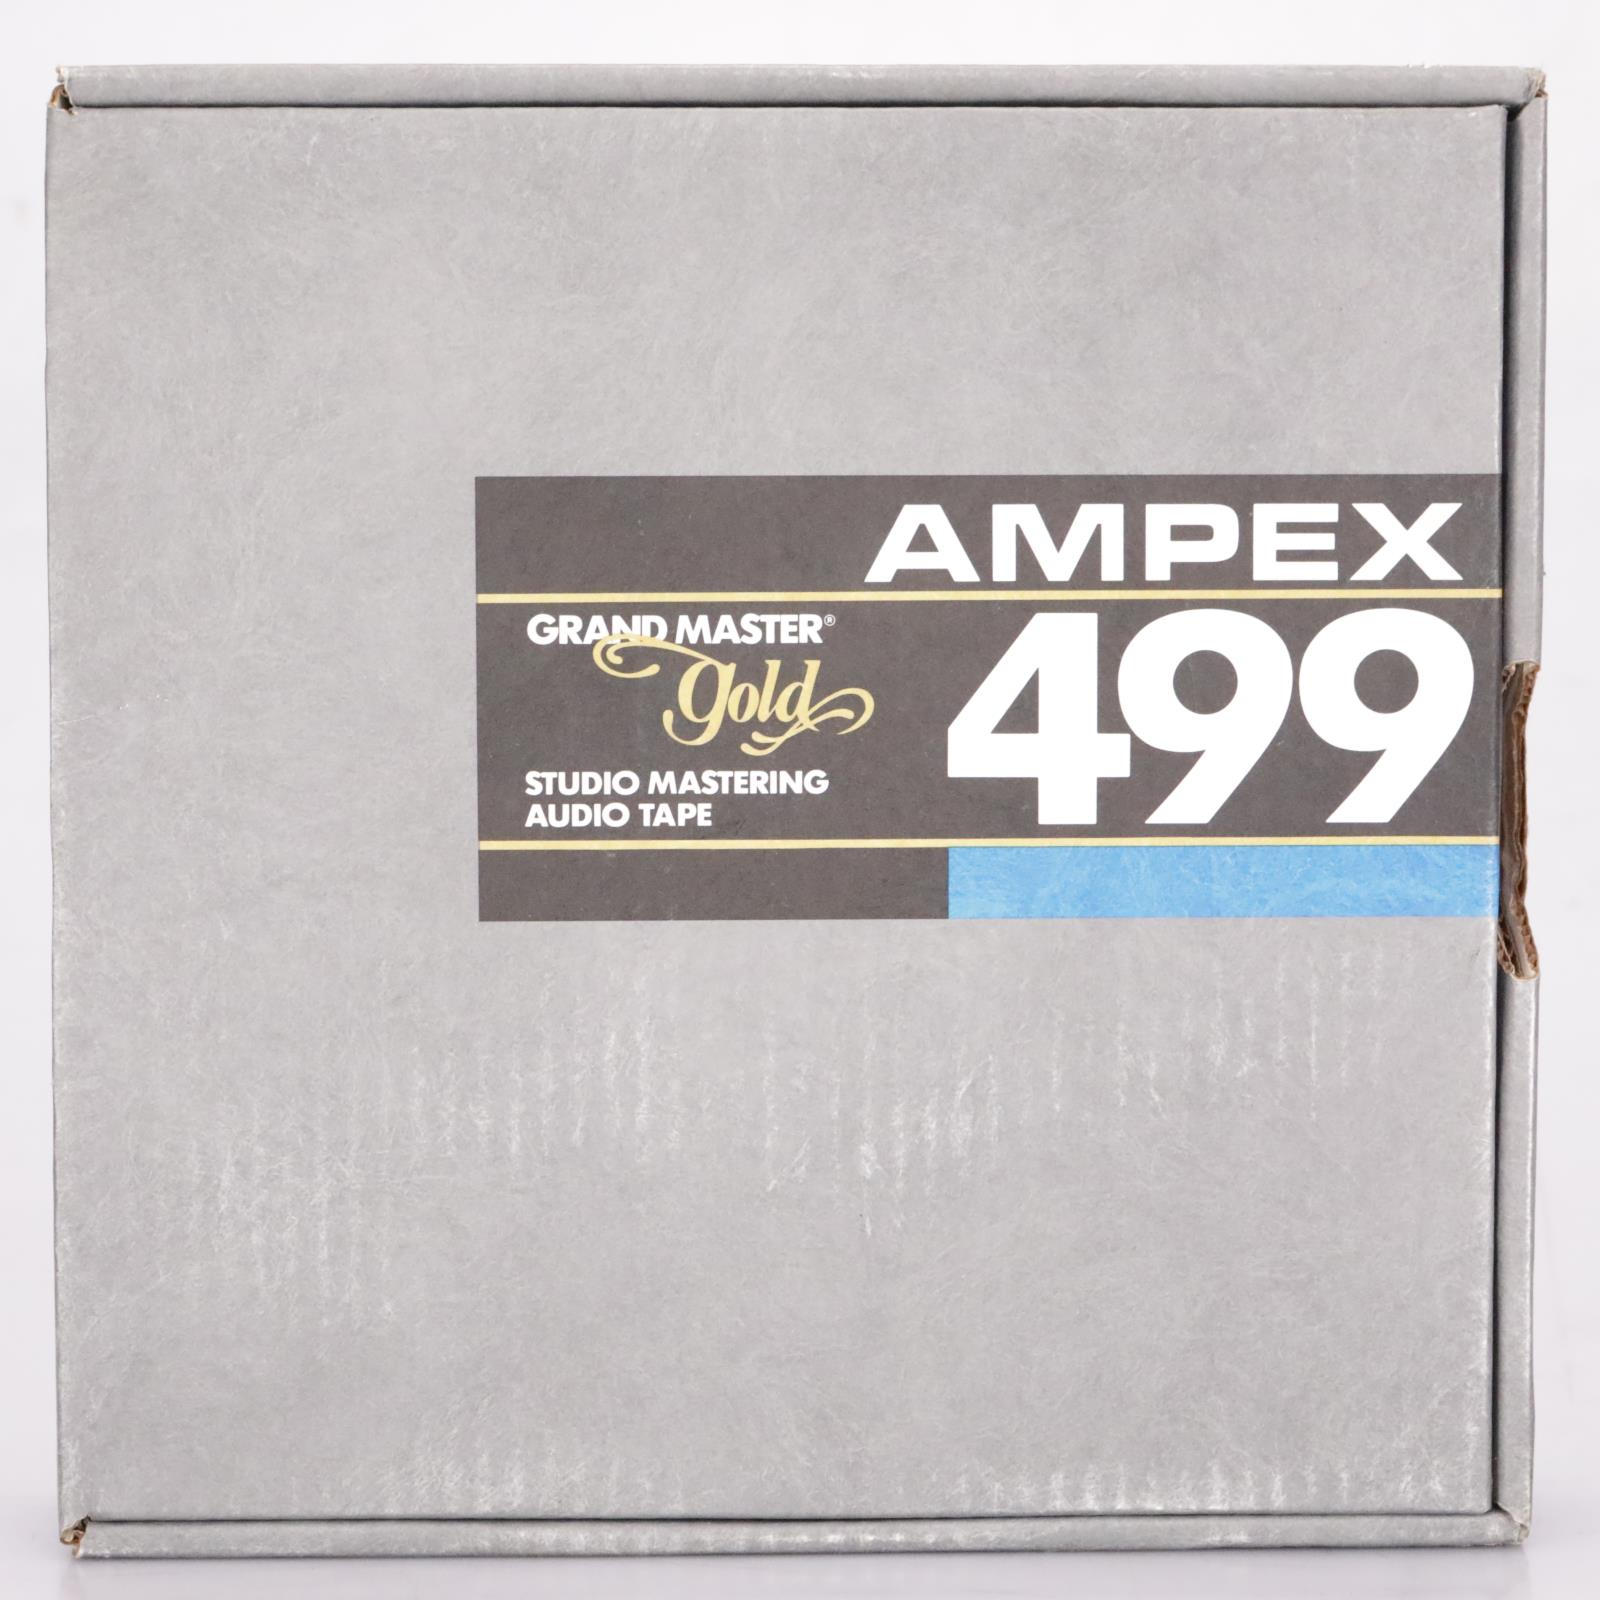 "Ampex 499 Grand Master 2"" x 2500' Gold Studio Mastering Audio Tape NOS #37338"